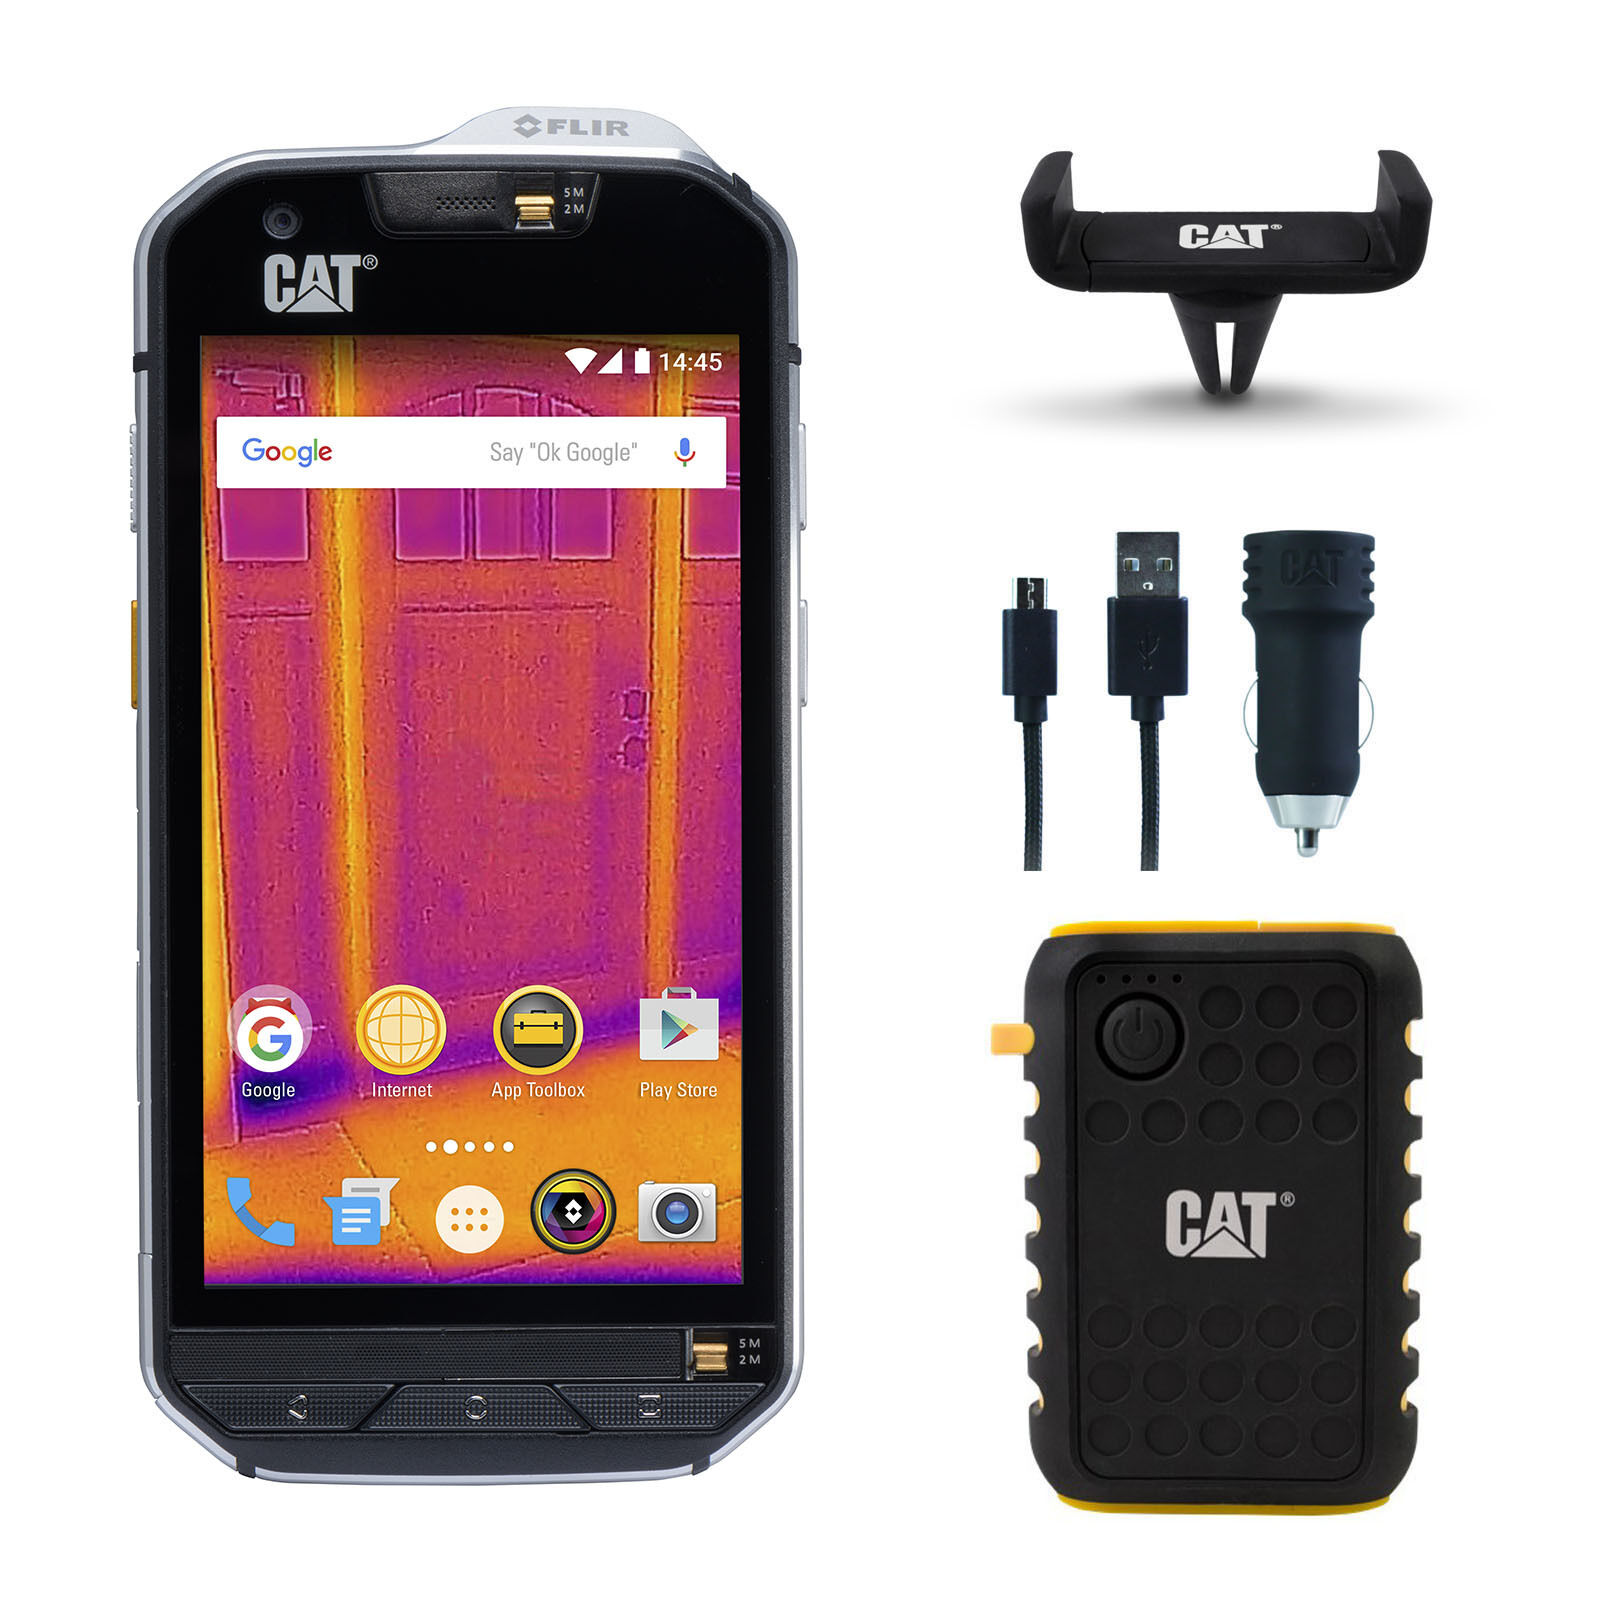 caterpillar cat s60 waterproof 32gb unlocked 4g smartphone battery phone charger. Black Bedroom Furniture Sets. Home Design Ideas